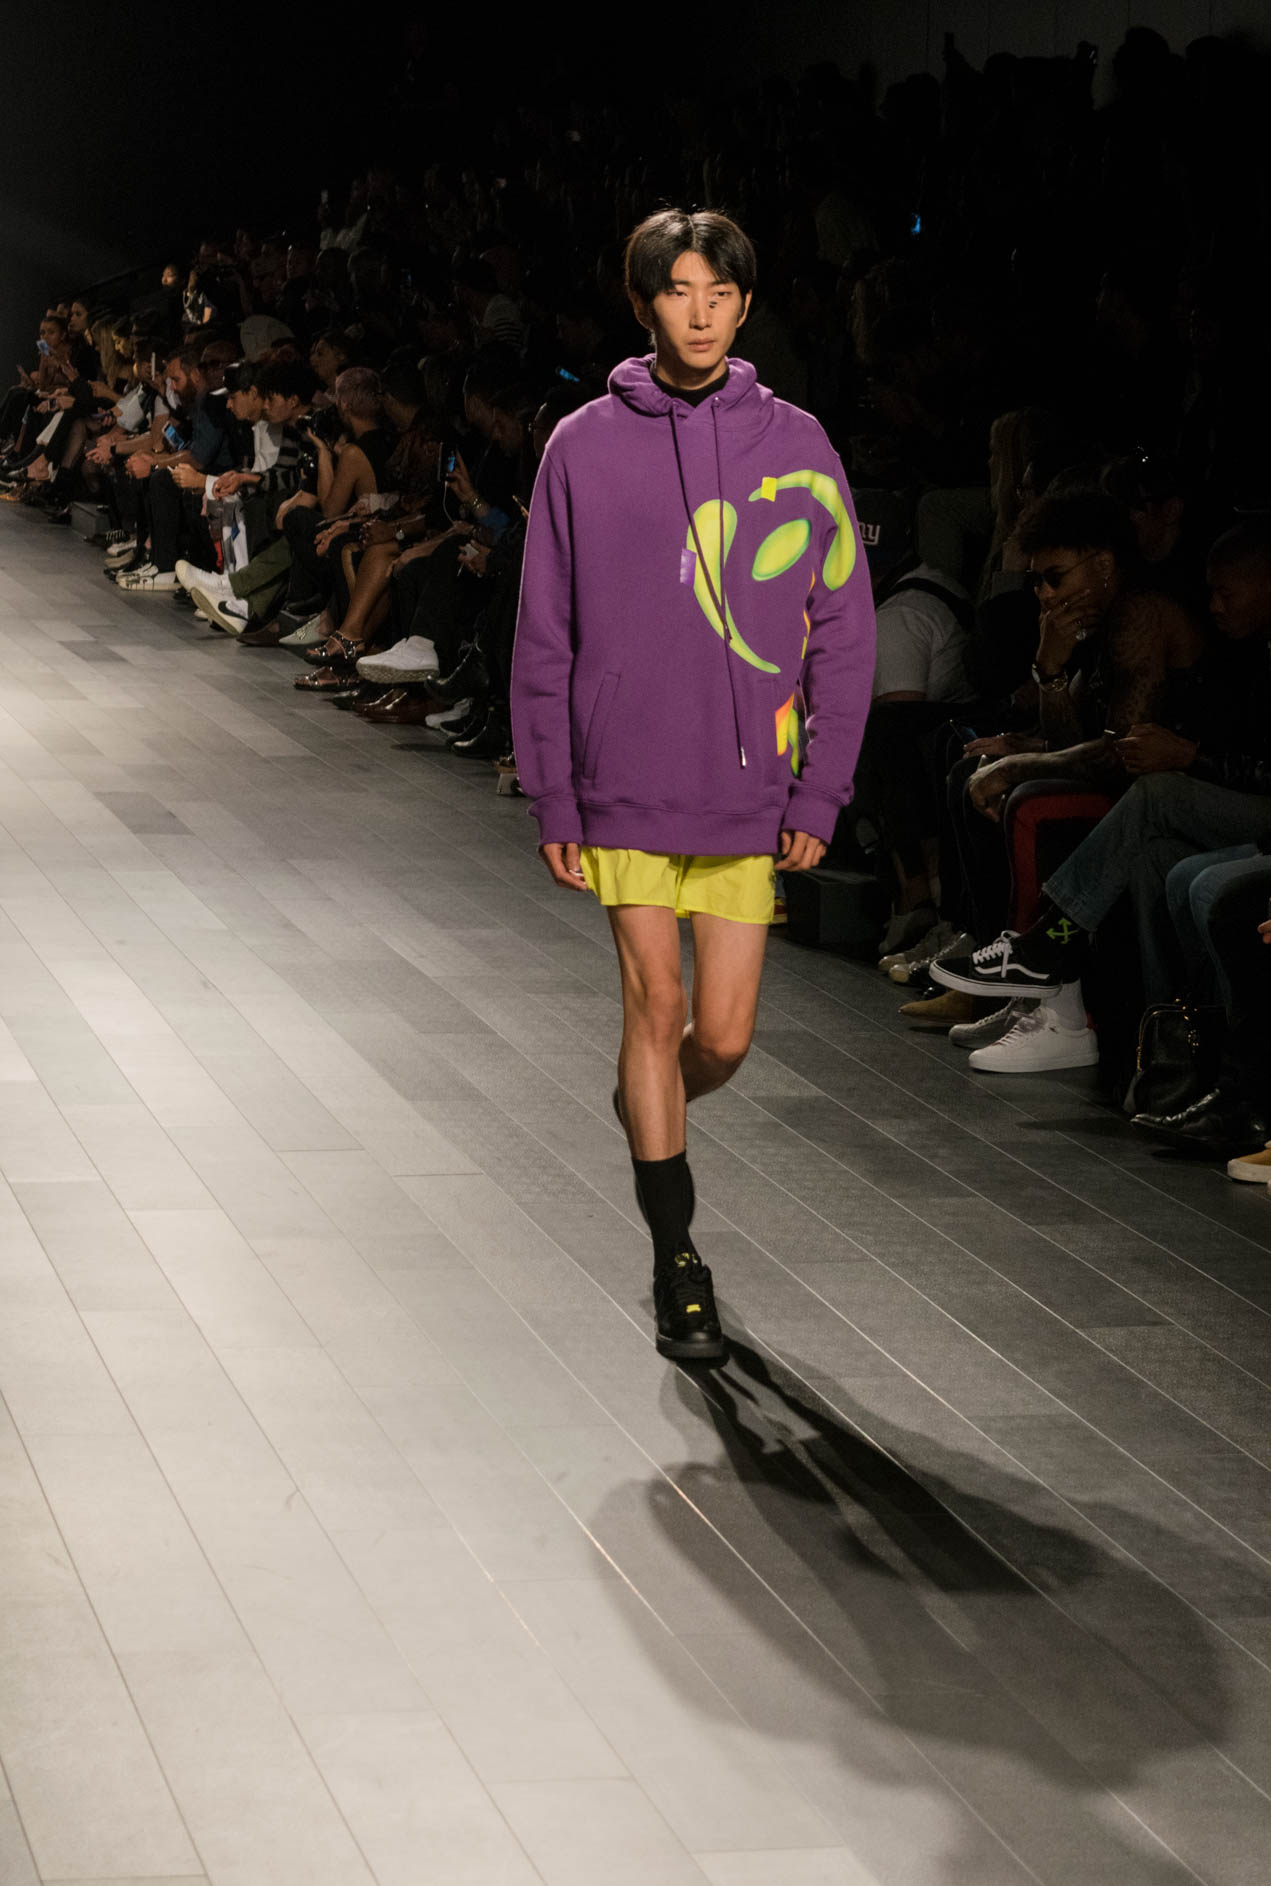 7 Rochambeau SS18 Runway Show - New York Fashion Week 2017 - FilterGrade Blog